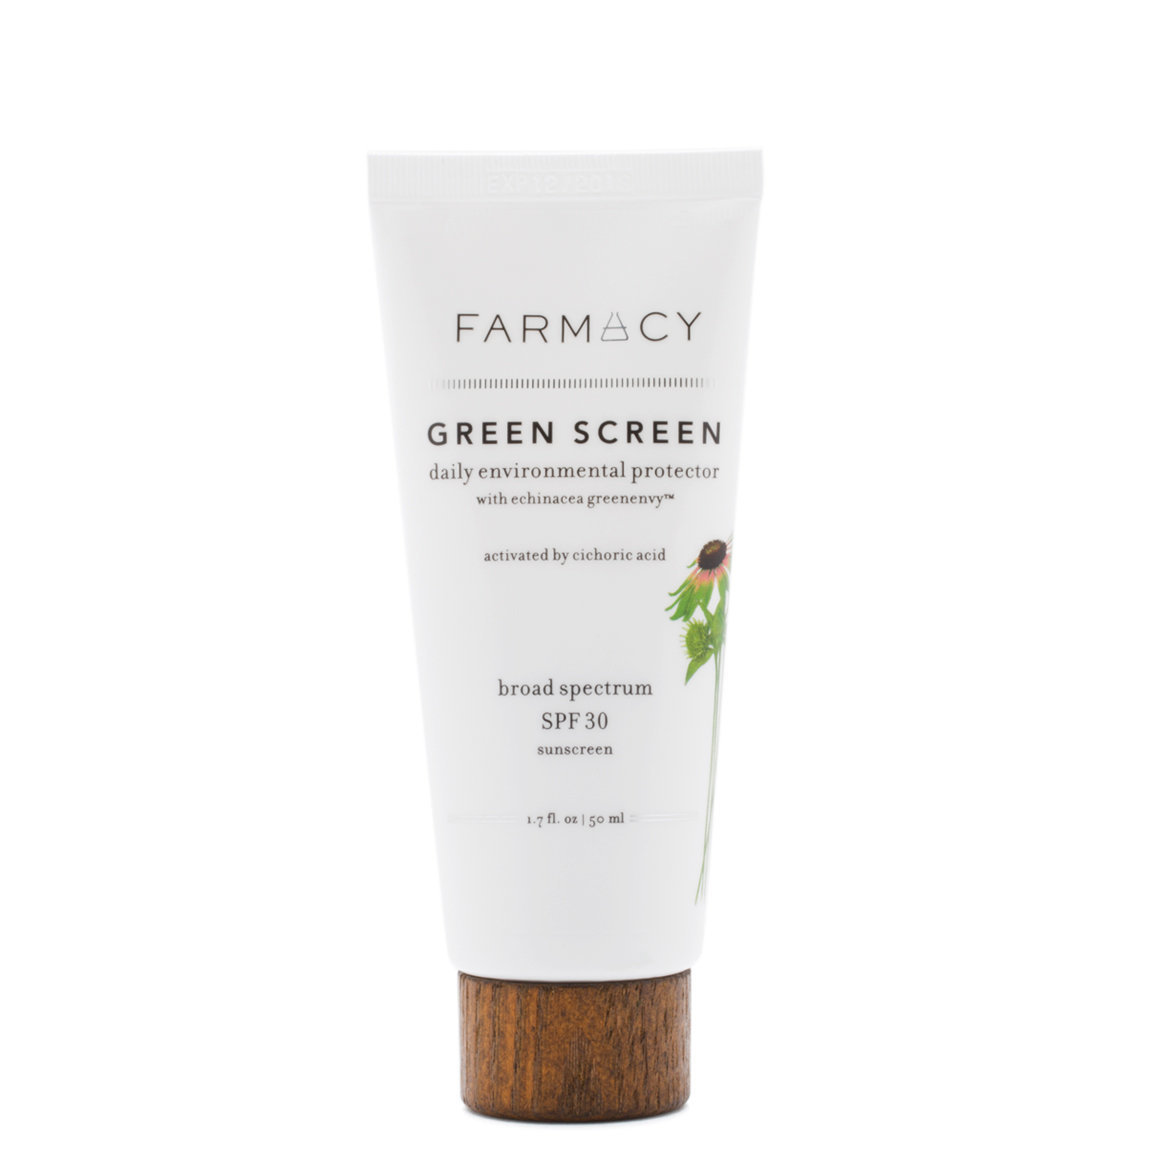 Farmacy Green Screen Daily Environmental Protector Broad Spectrum SPF 30 product smear.